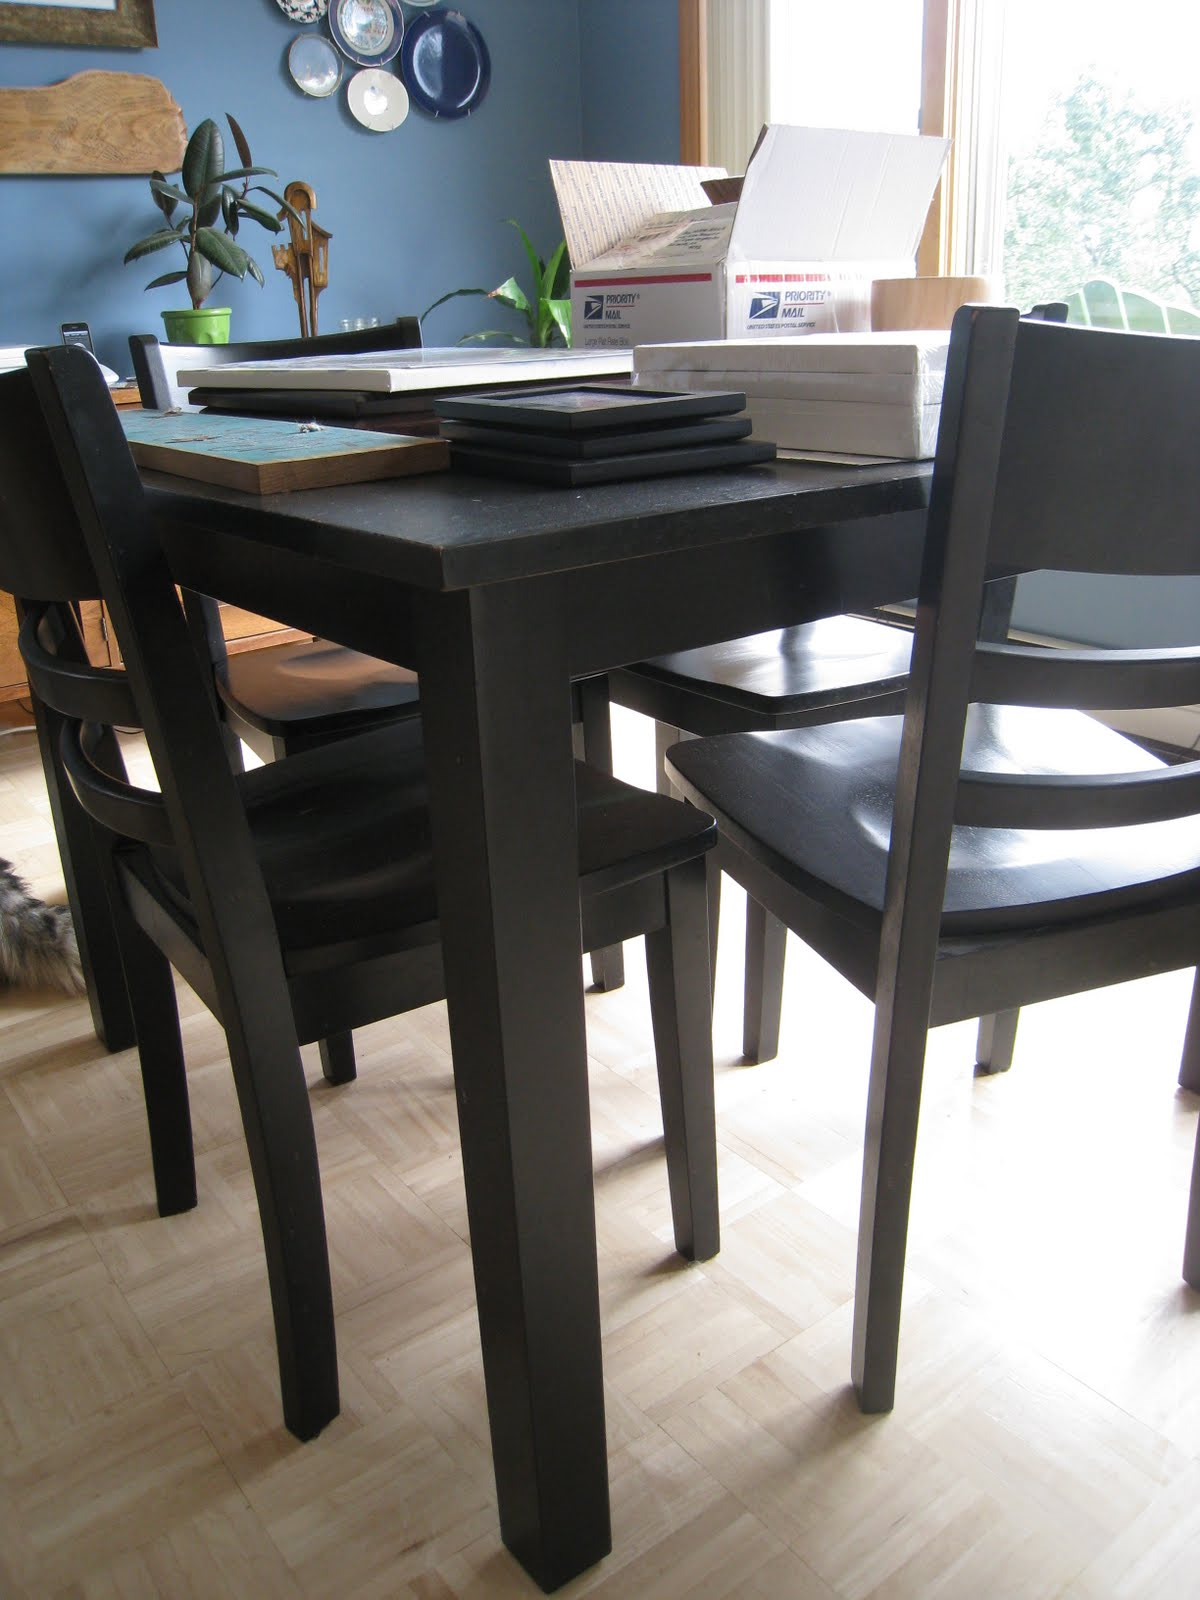 Discount Kitchen Islands With Breakfast Bar 8 Charming Fred Meyer Dining Table - Estateregional.com